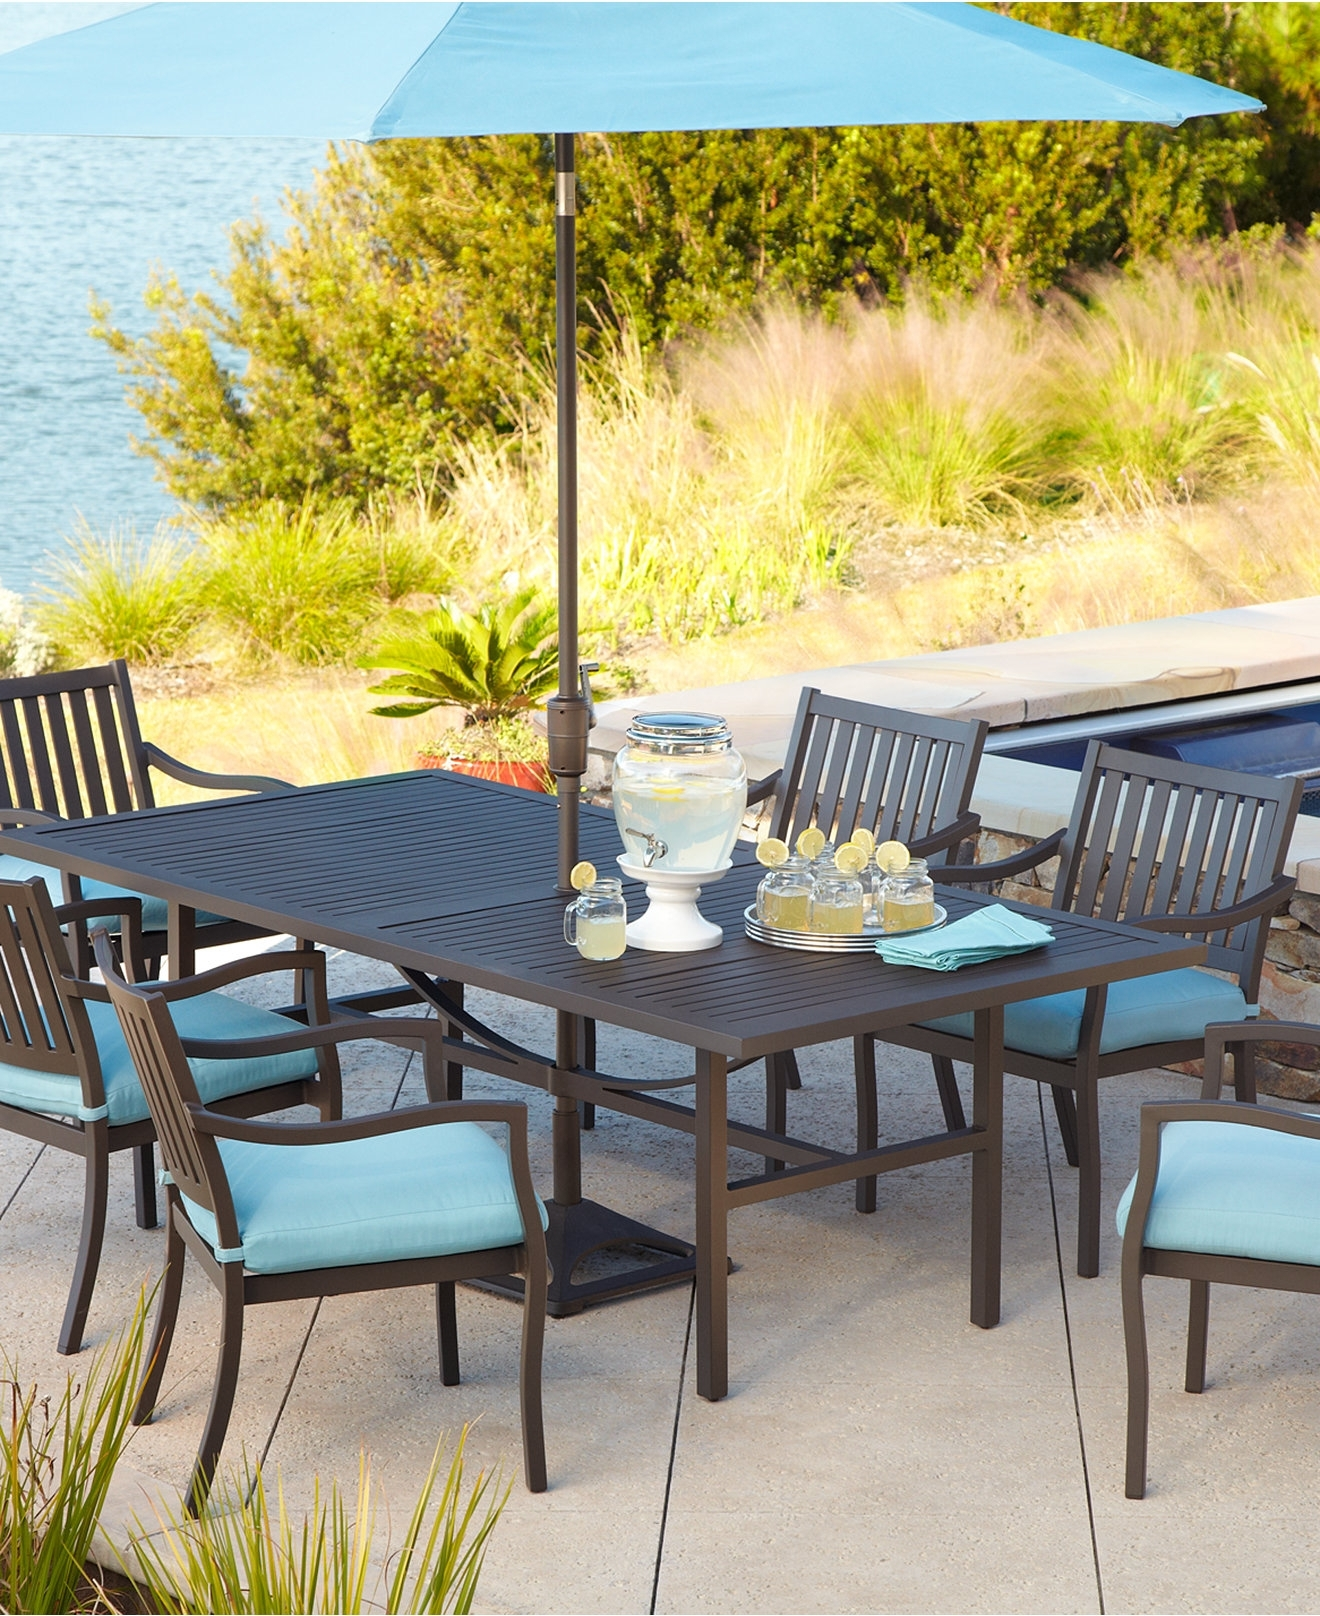 Most Current Patio: Awesome Patio Umbrella Set Patio Furniture With Umbrella Sets Throughout Patio Dining Sets With Umbrellas (View 17 of 20)